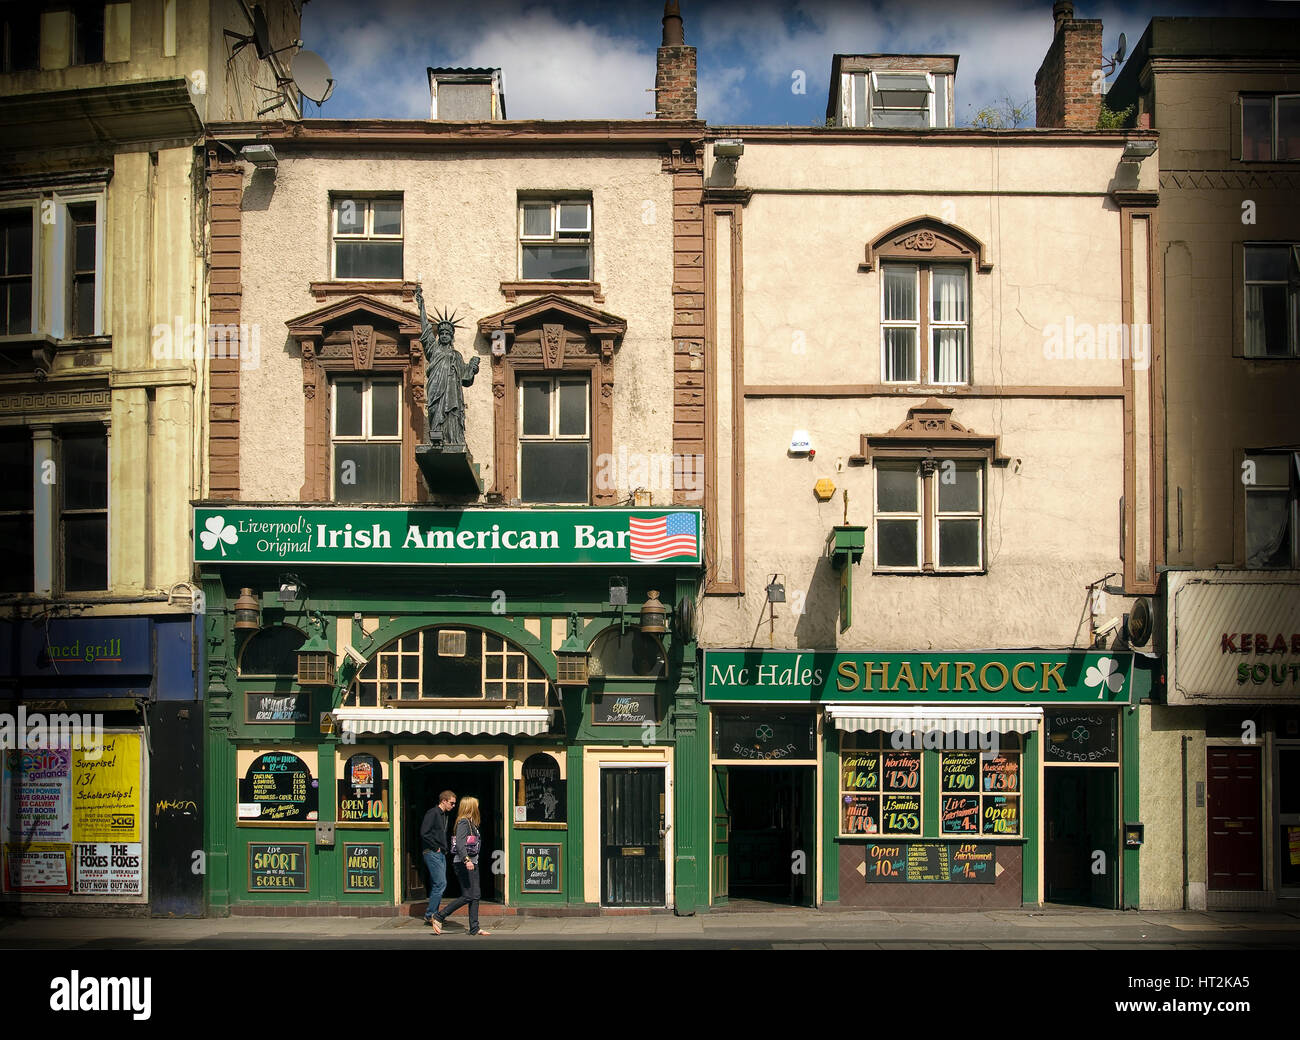 The two Irish bars in Lime street Liverpool. - Stock Image